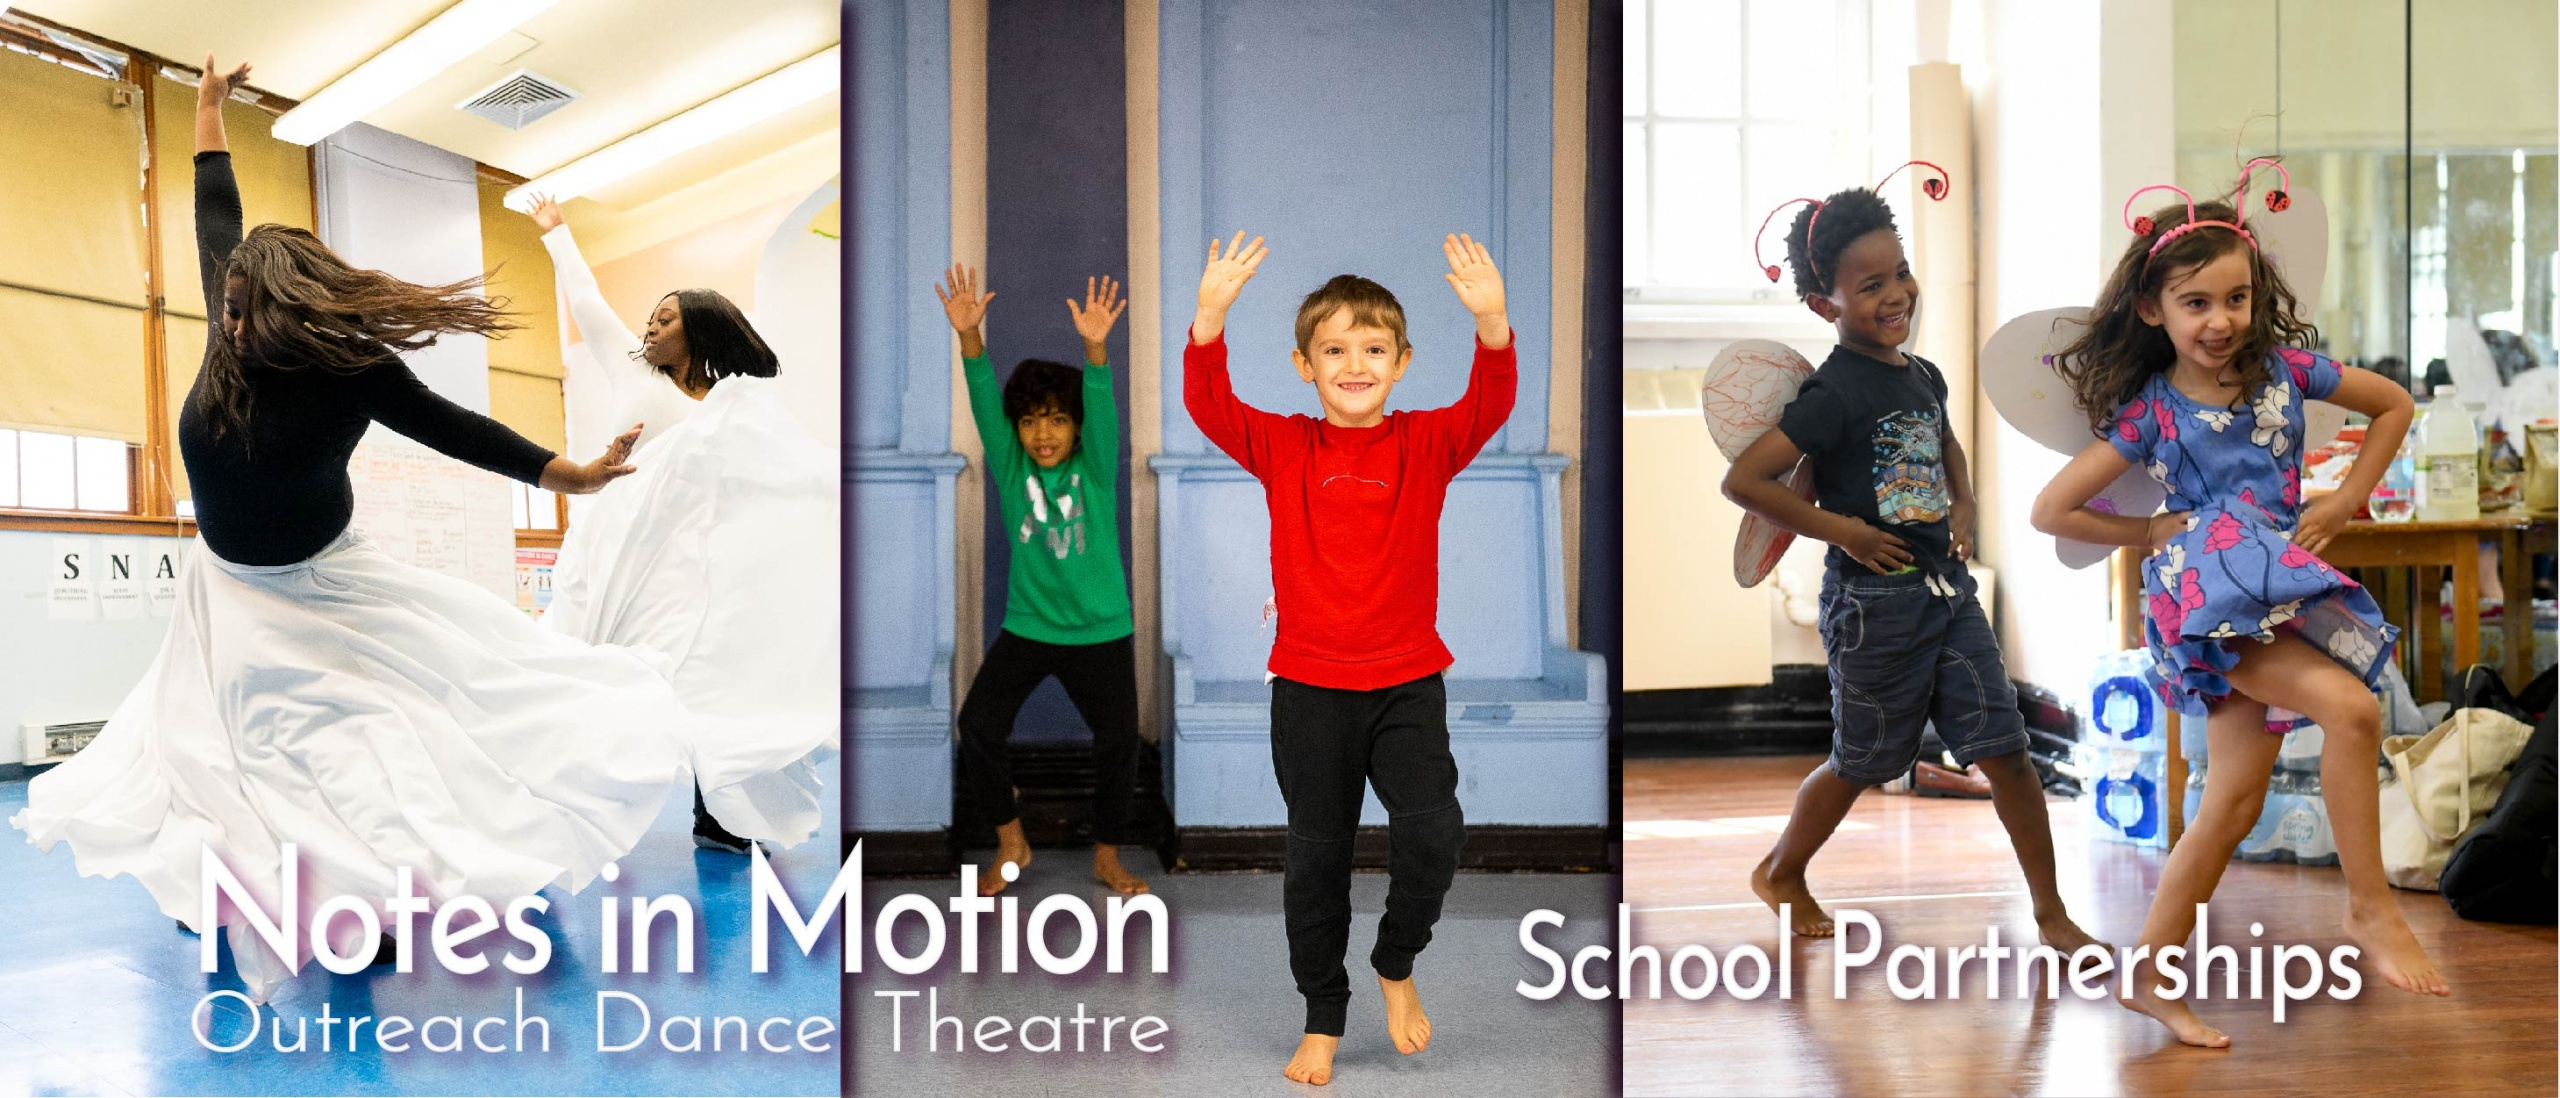 Notes in Motion school partnerships offered in NYC publics schools throughout the 5-boroughs